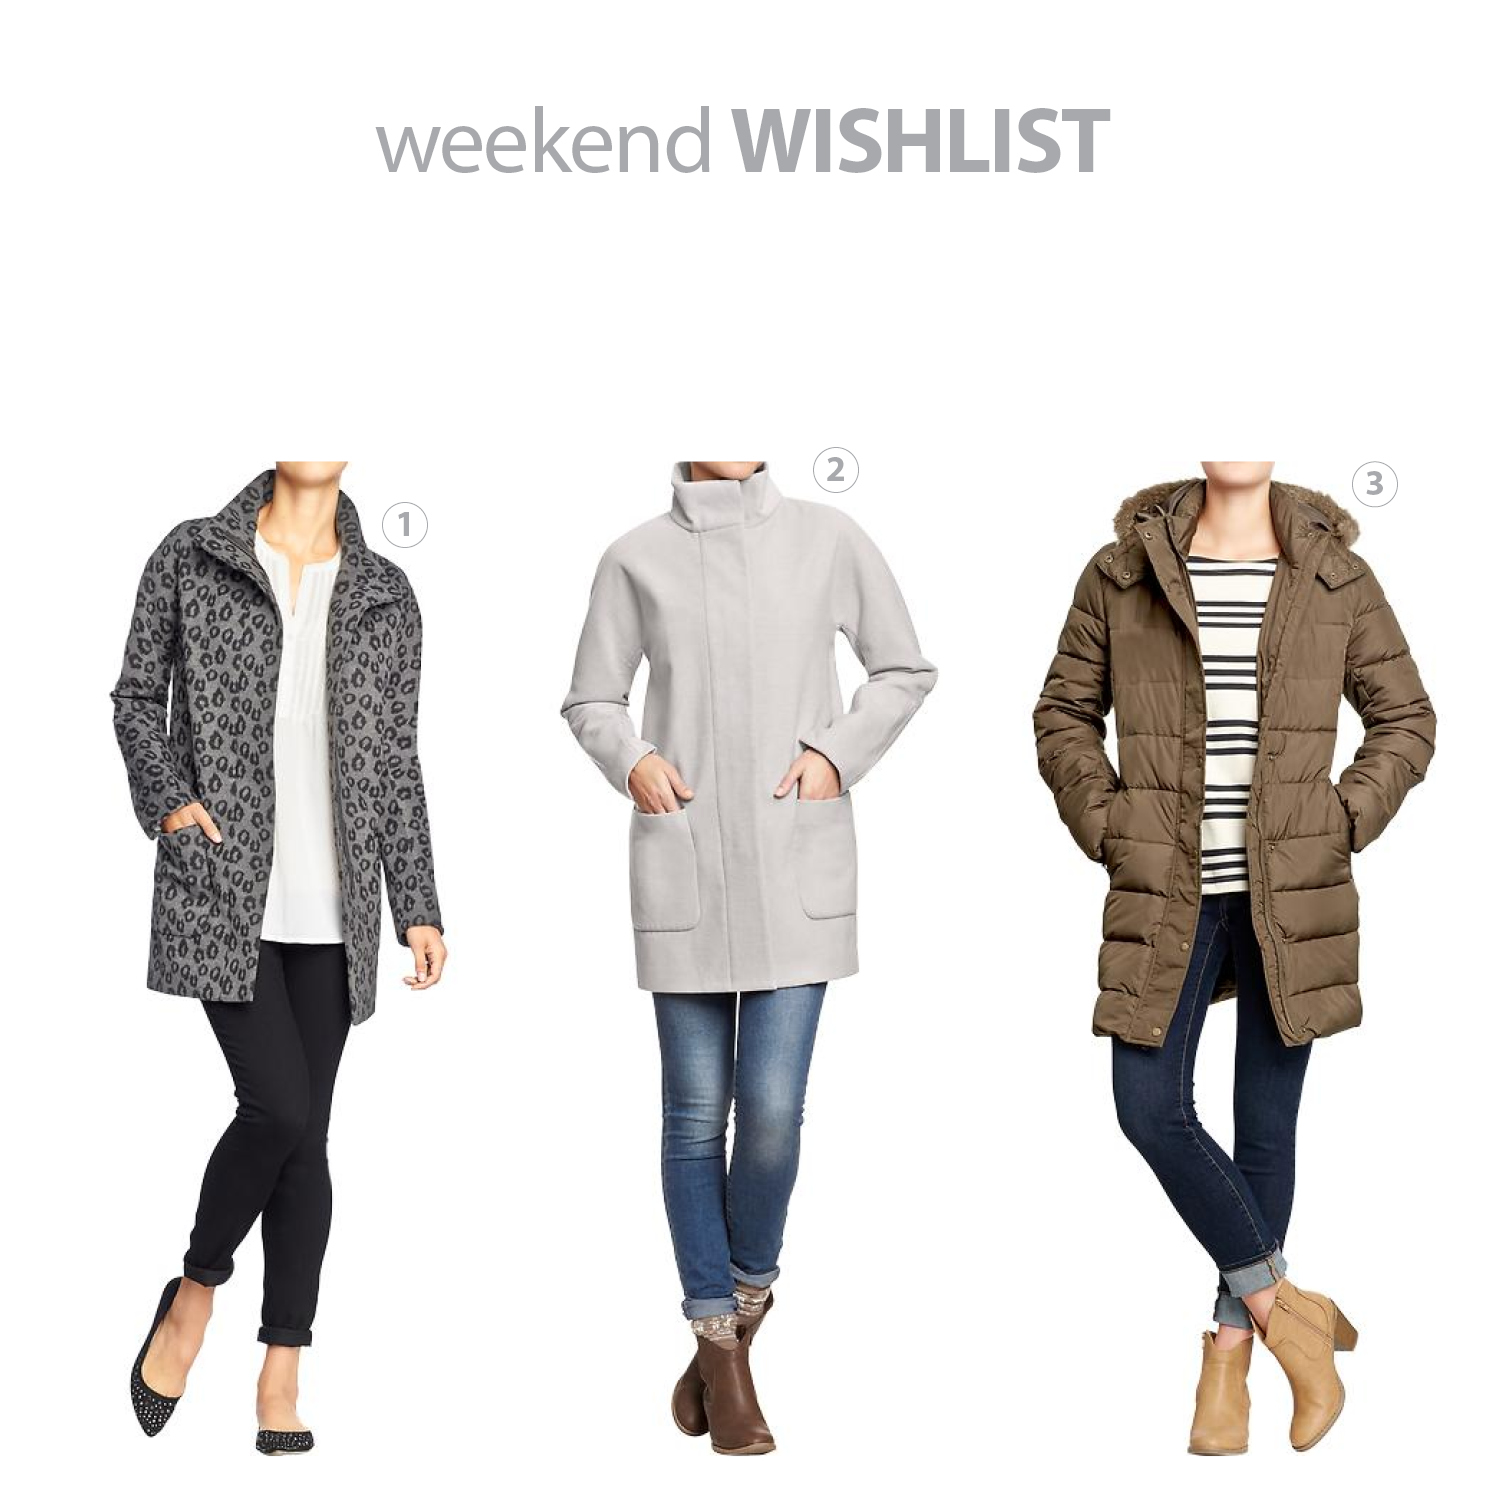 weekend wishlist_five